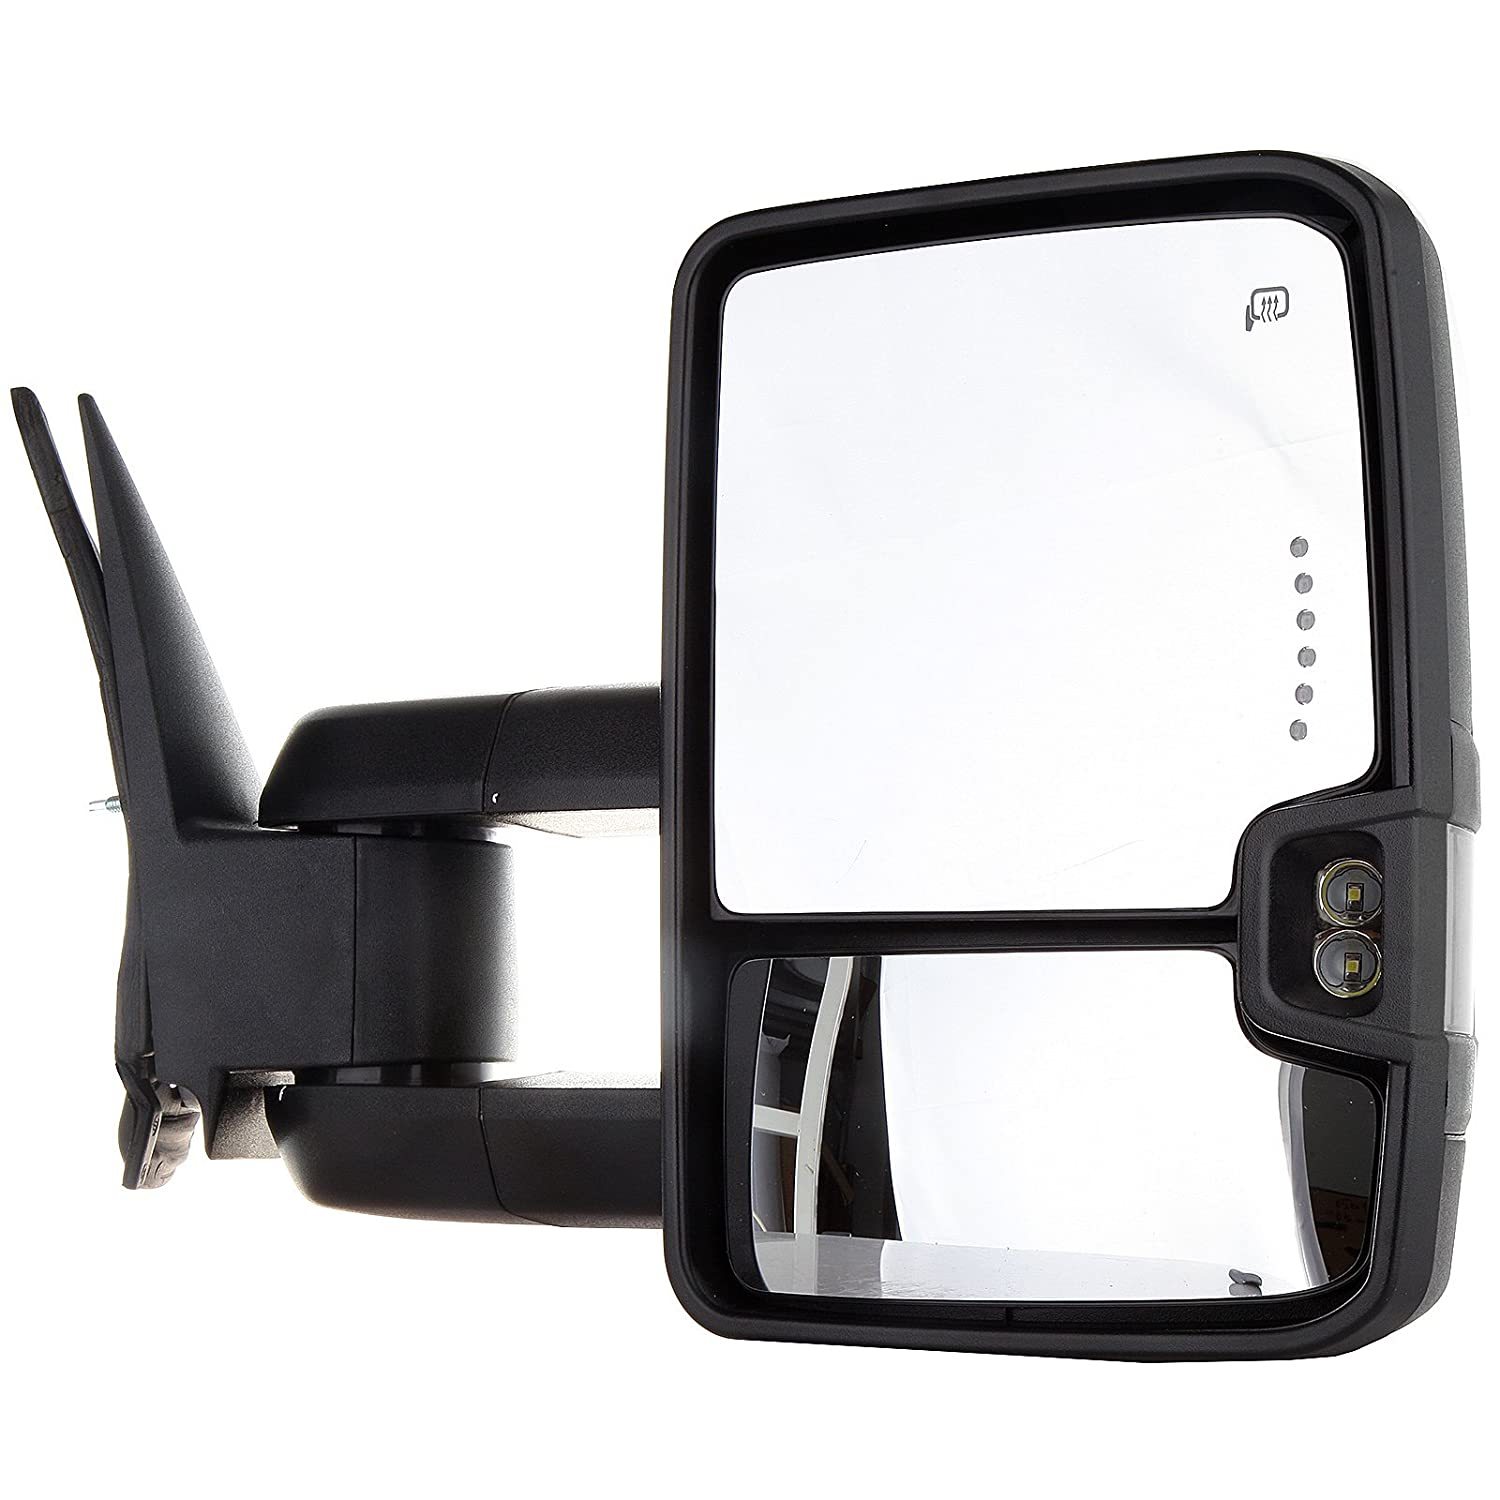 Towing Mirrors Exterior Accessories For Chevy Lighted Heated Tow Mirror Wiring Diagram Gmc 2003 2006 Silverado Sierra 07 Classic Models Pair Rear View With Turn Signal